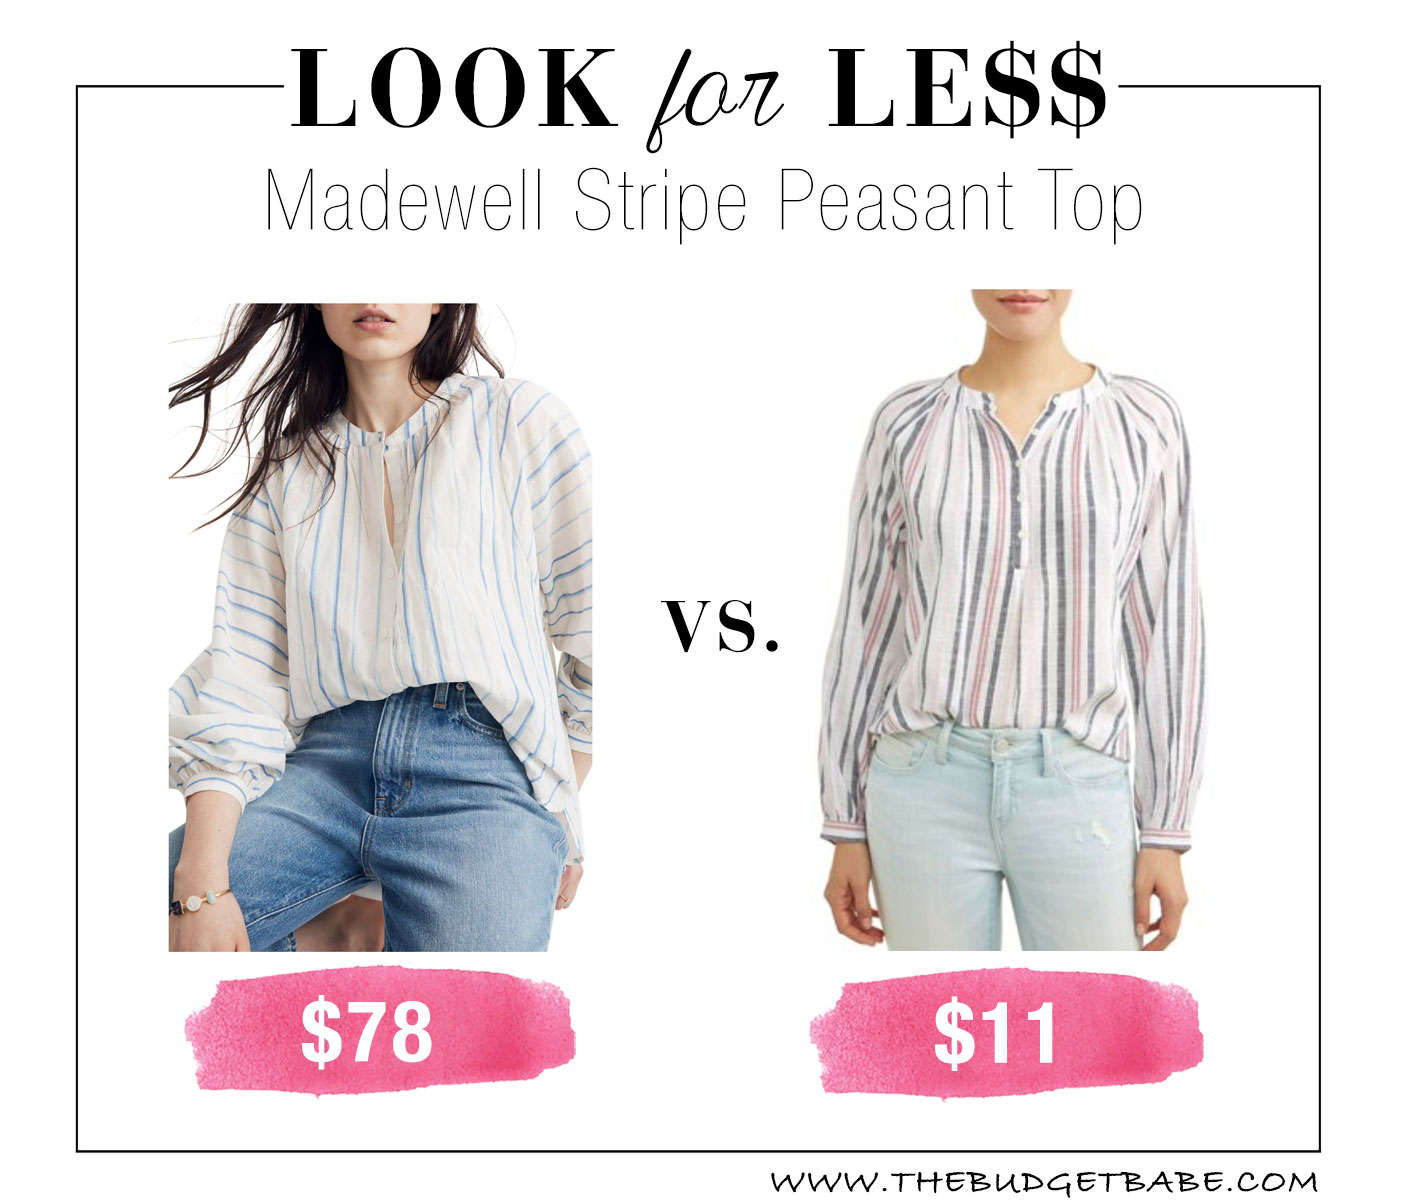 Madewell look for less at Walmart!